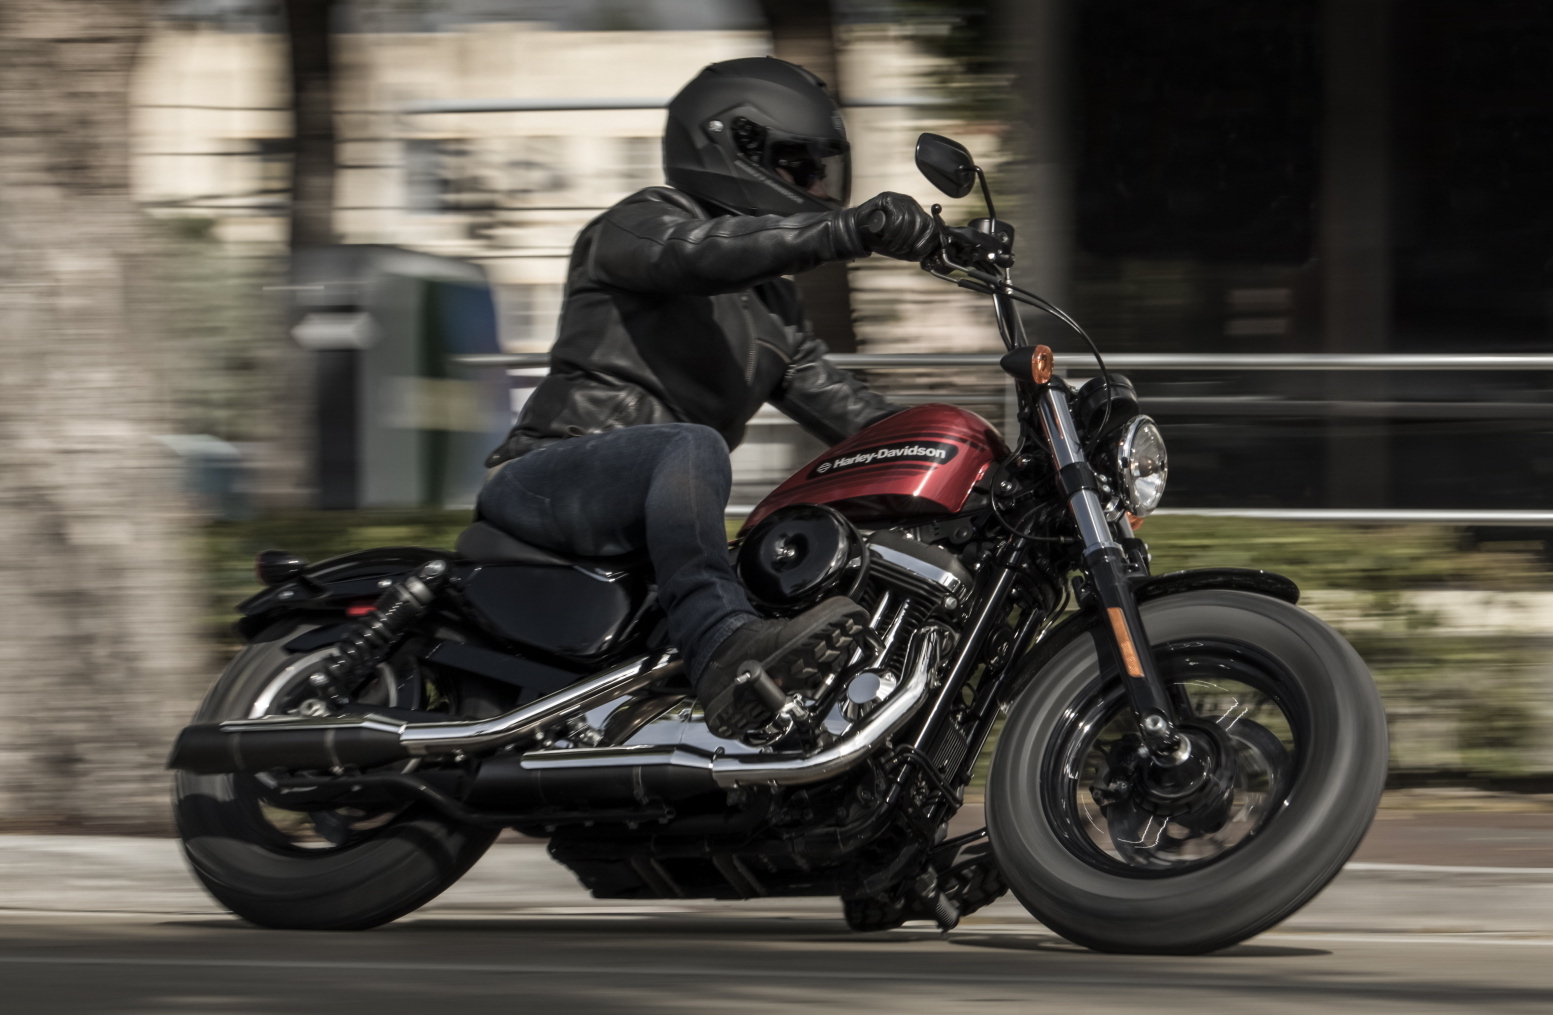 2018 harley davidson forty eight special and iron 1200 unveiled in us from rm39 146 to rm44. Black Bedroom Furniture Sets. Home Design Ideas